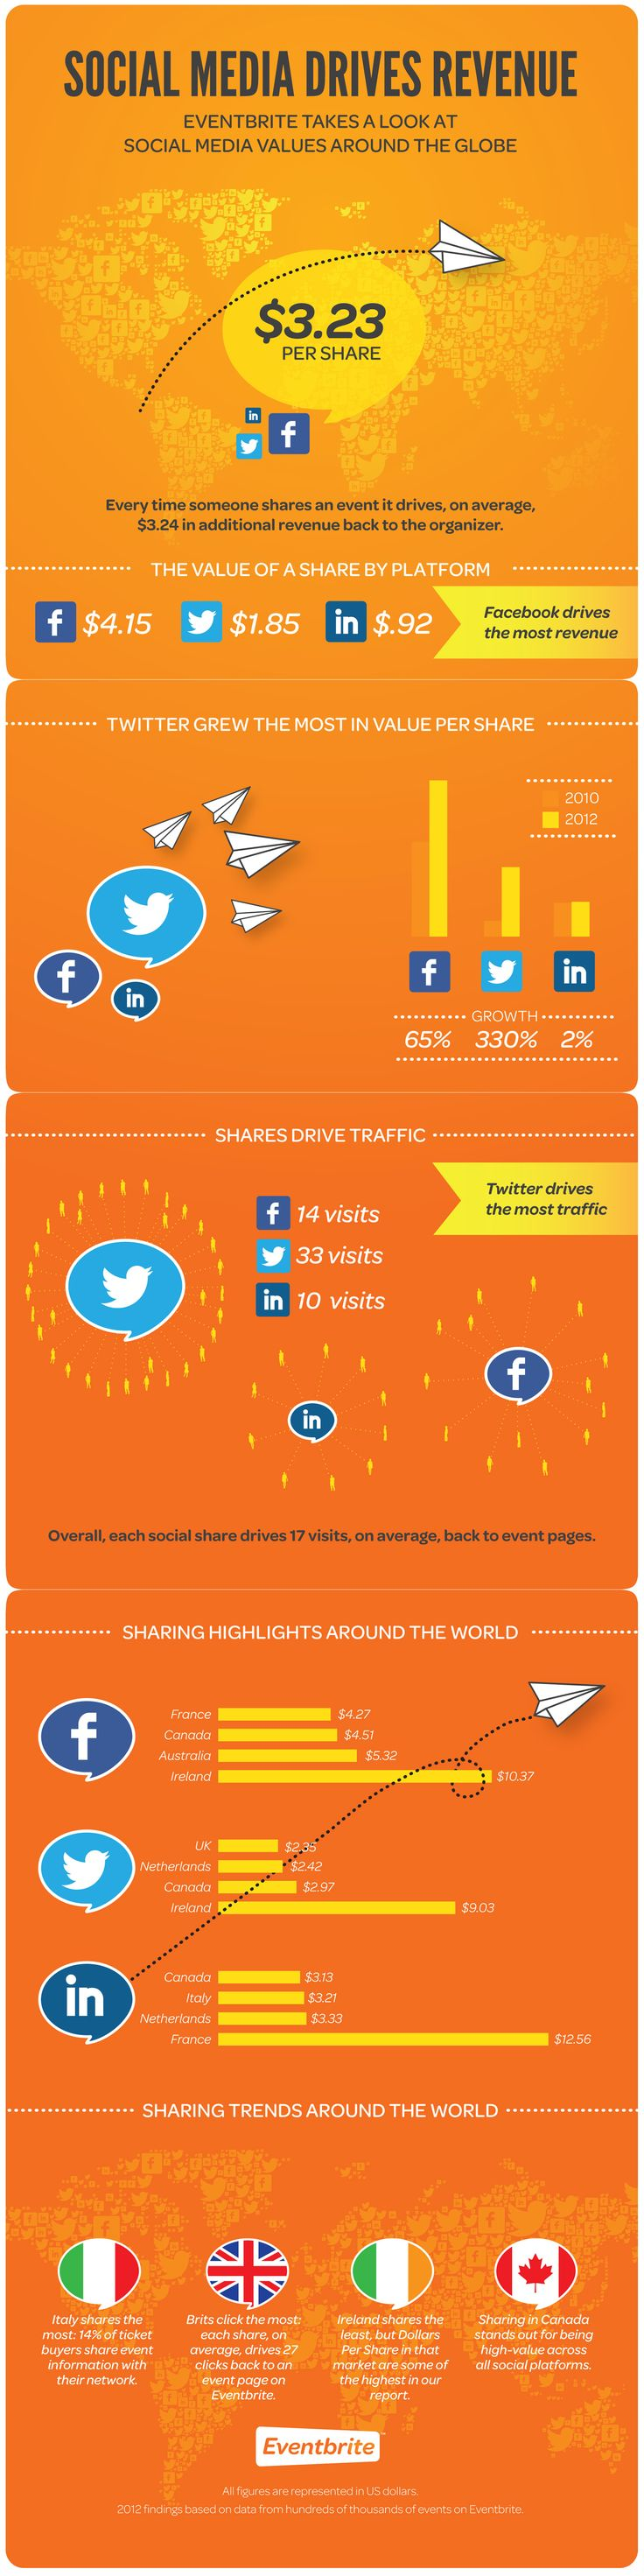 Eventbrite Infographic on the value of social sharing on Facebook Twitter and LinkedIn